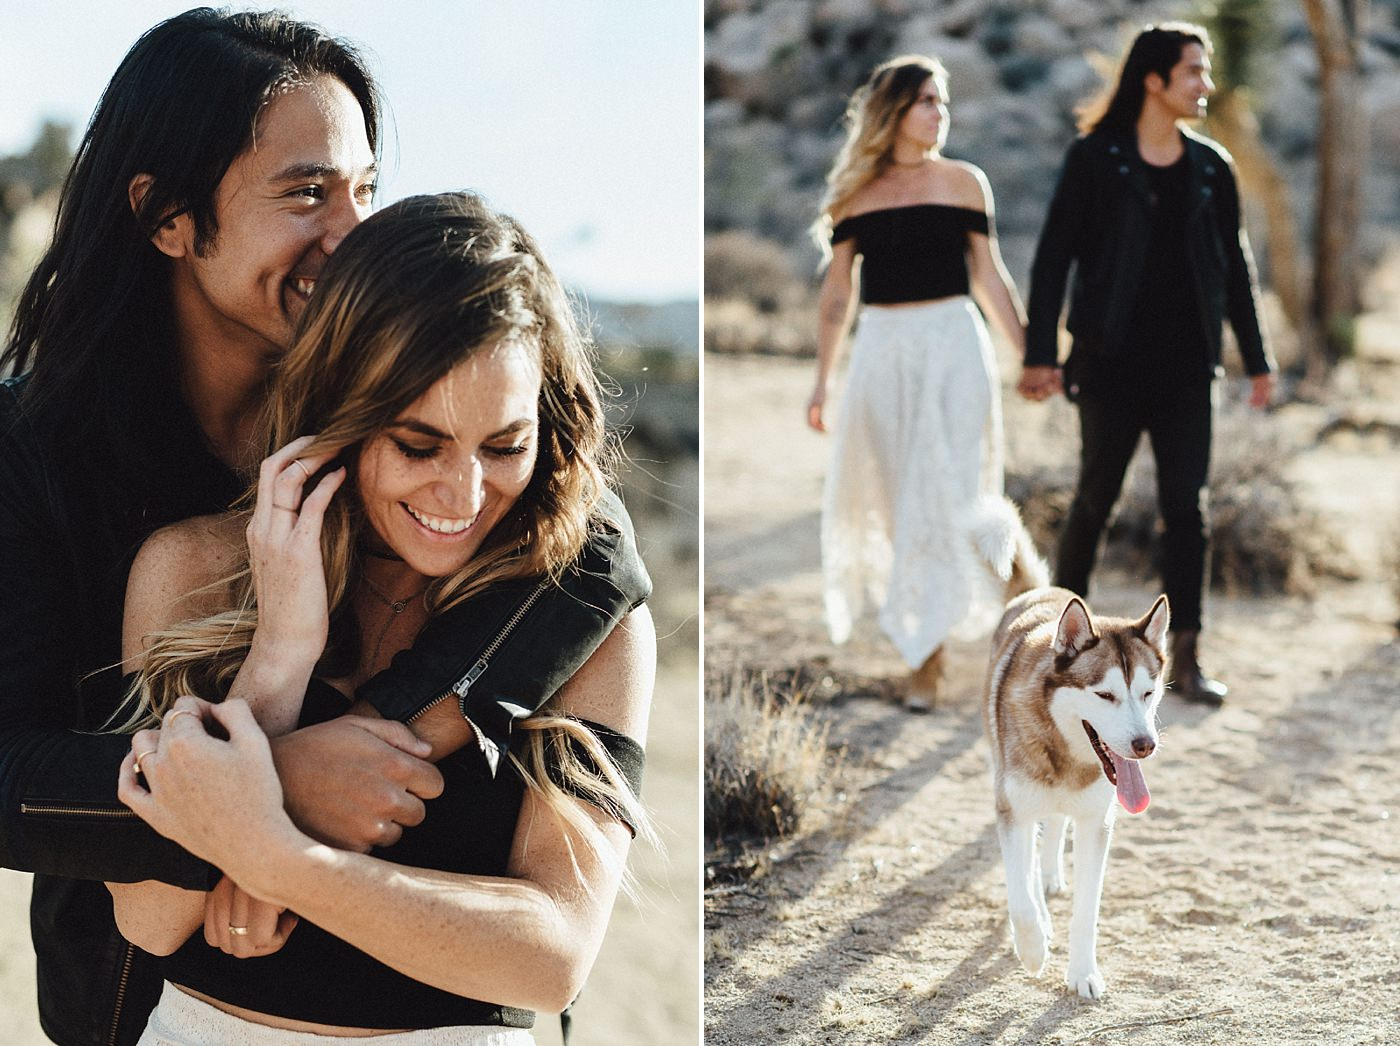 international-elopement-photographer_0165 Kinsey & Josh & Banjo Photographer in Joshuatreeinternational elopement photographer 0165